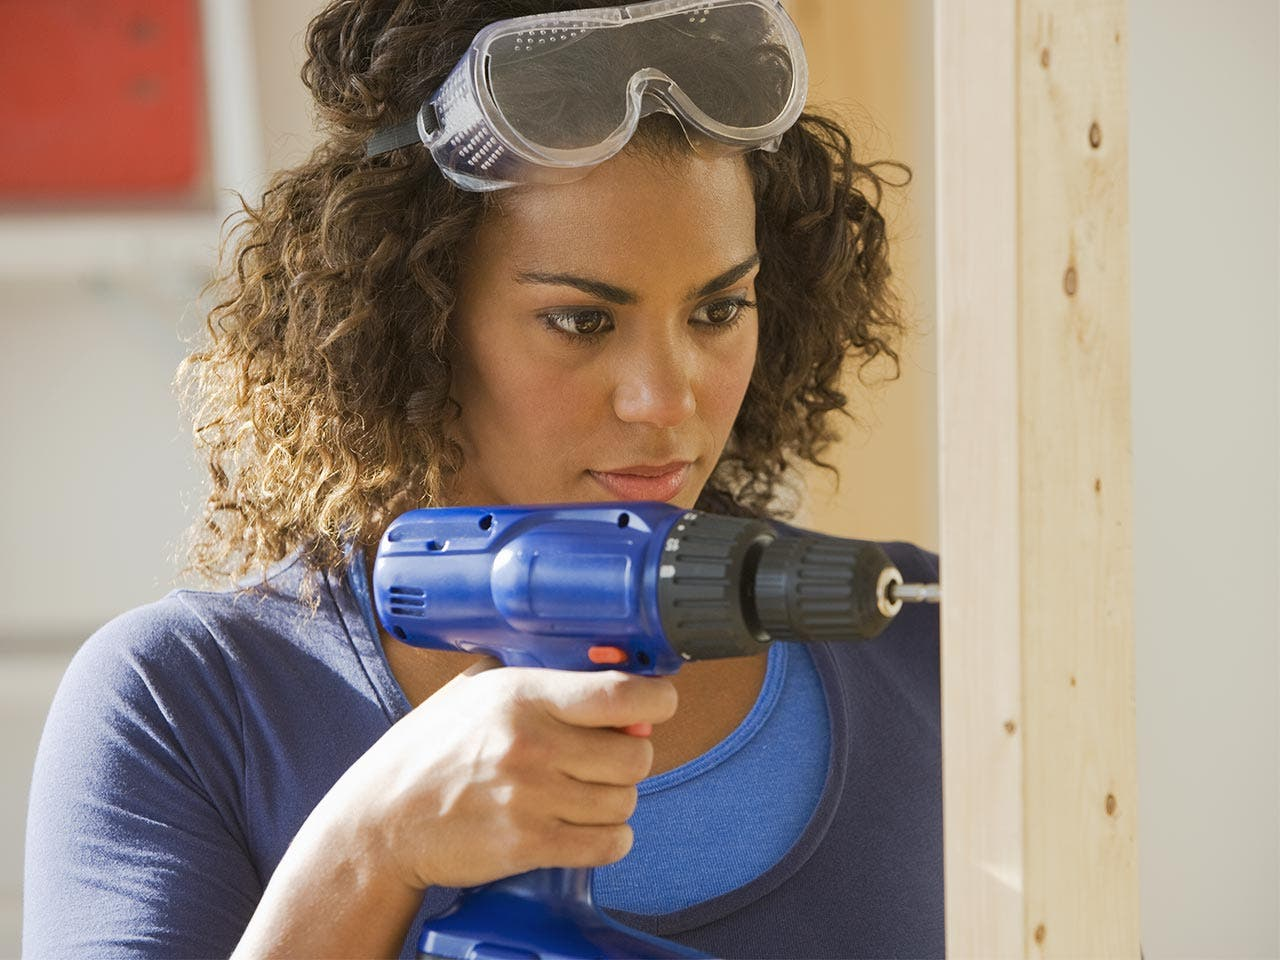 Woman with powerdrill